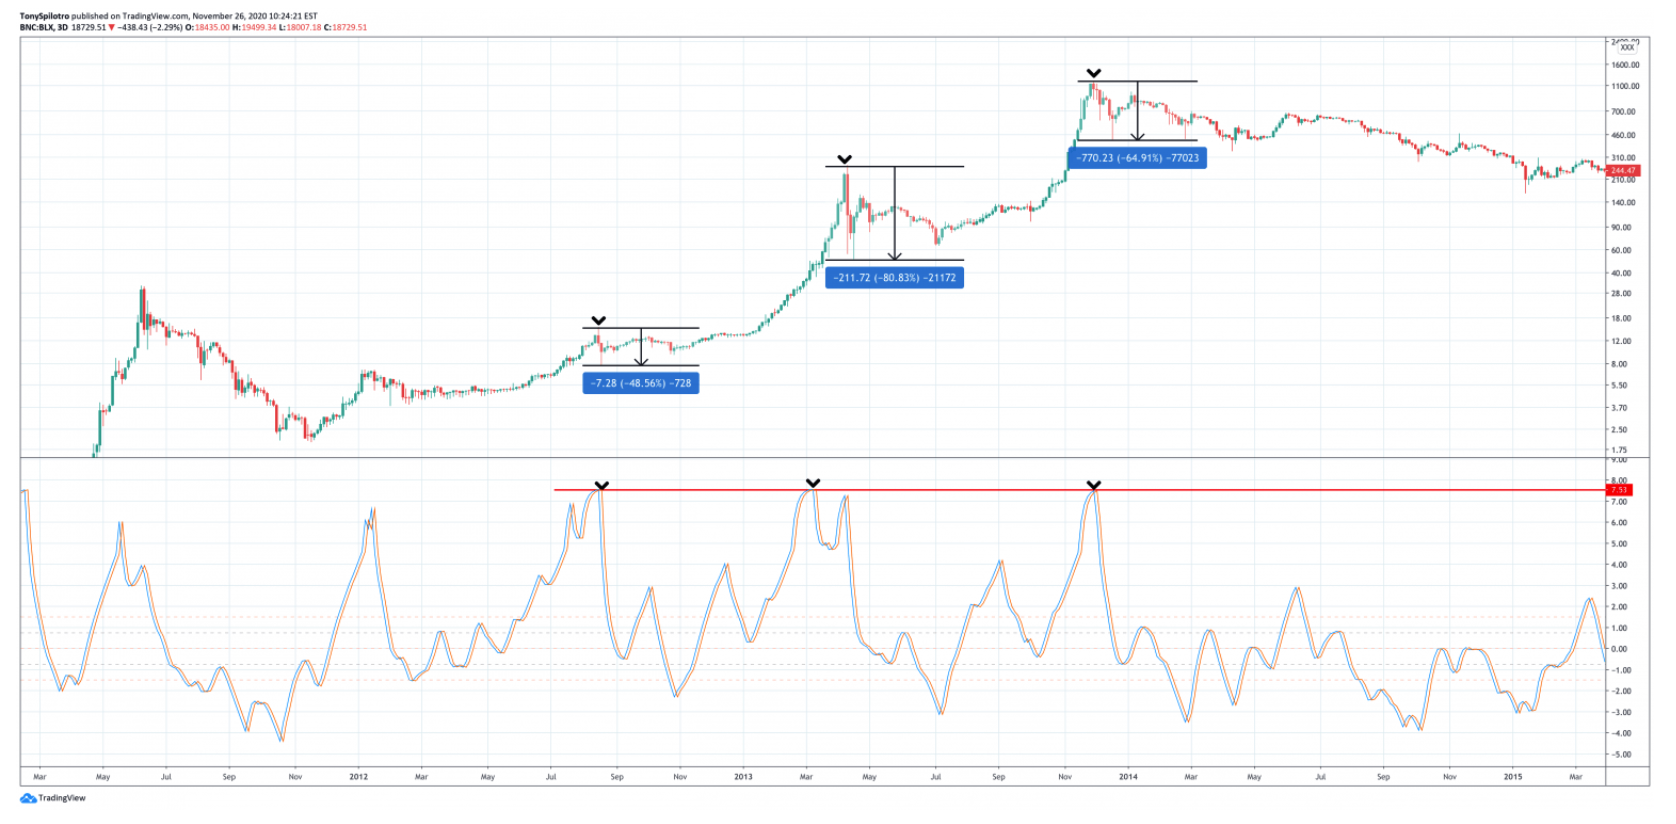 will-a-historic-selloff-follow-this-previously-unstoppable-bitcoin-price-rally1